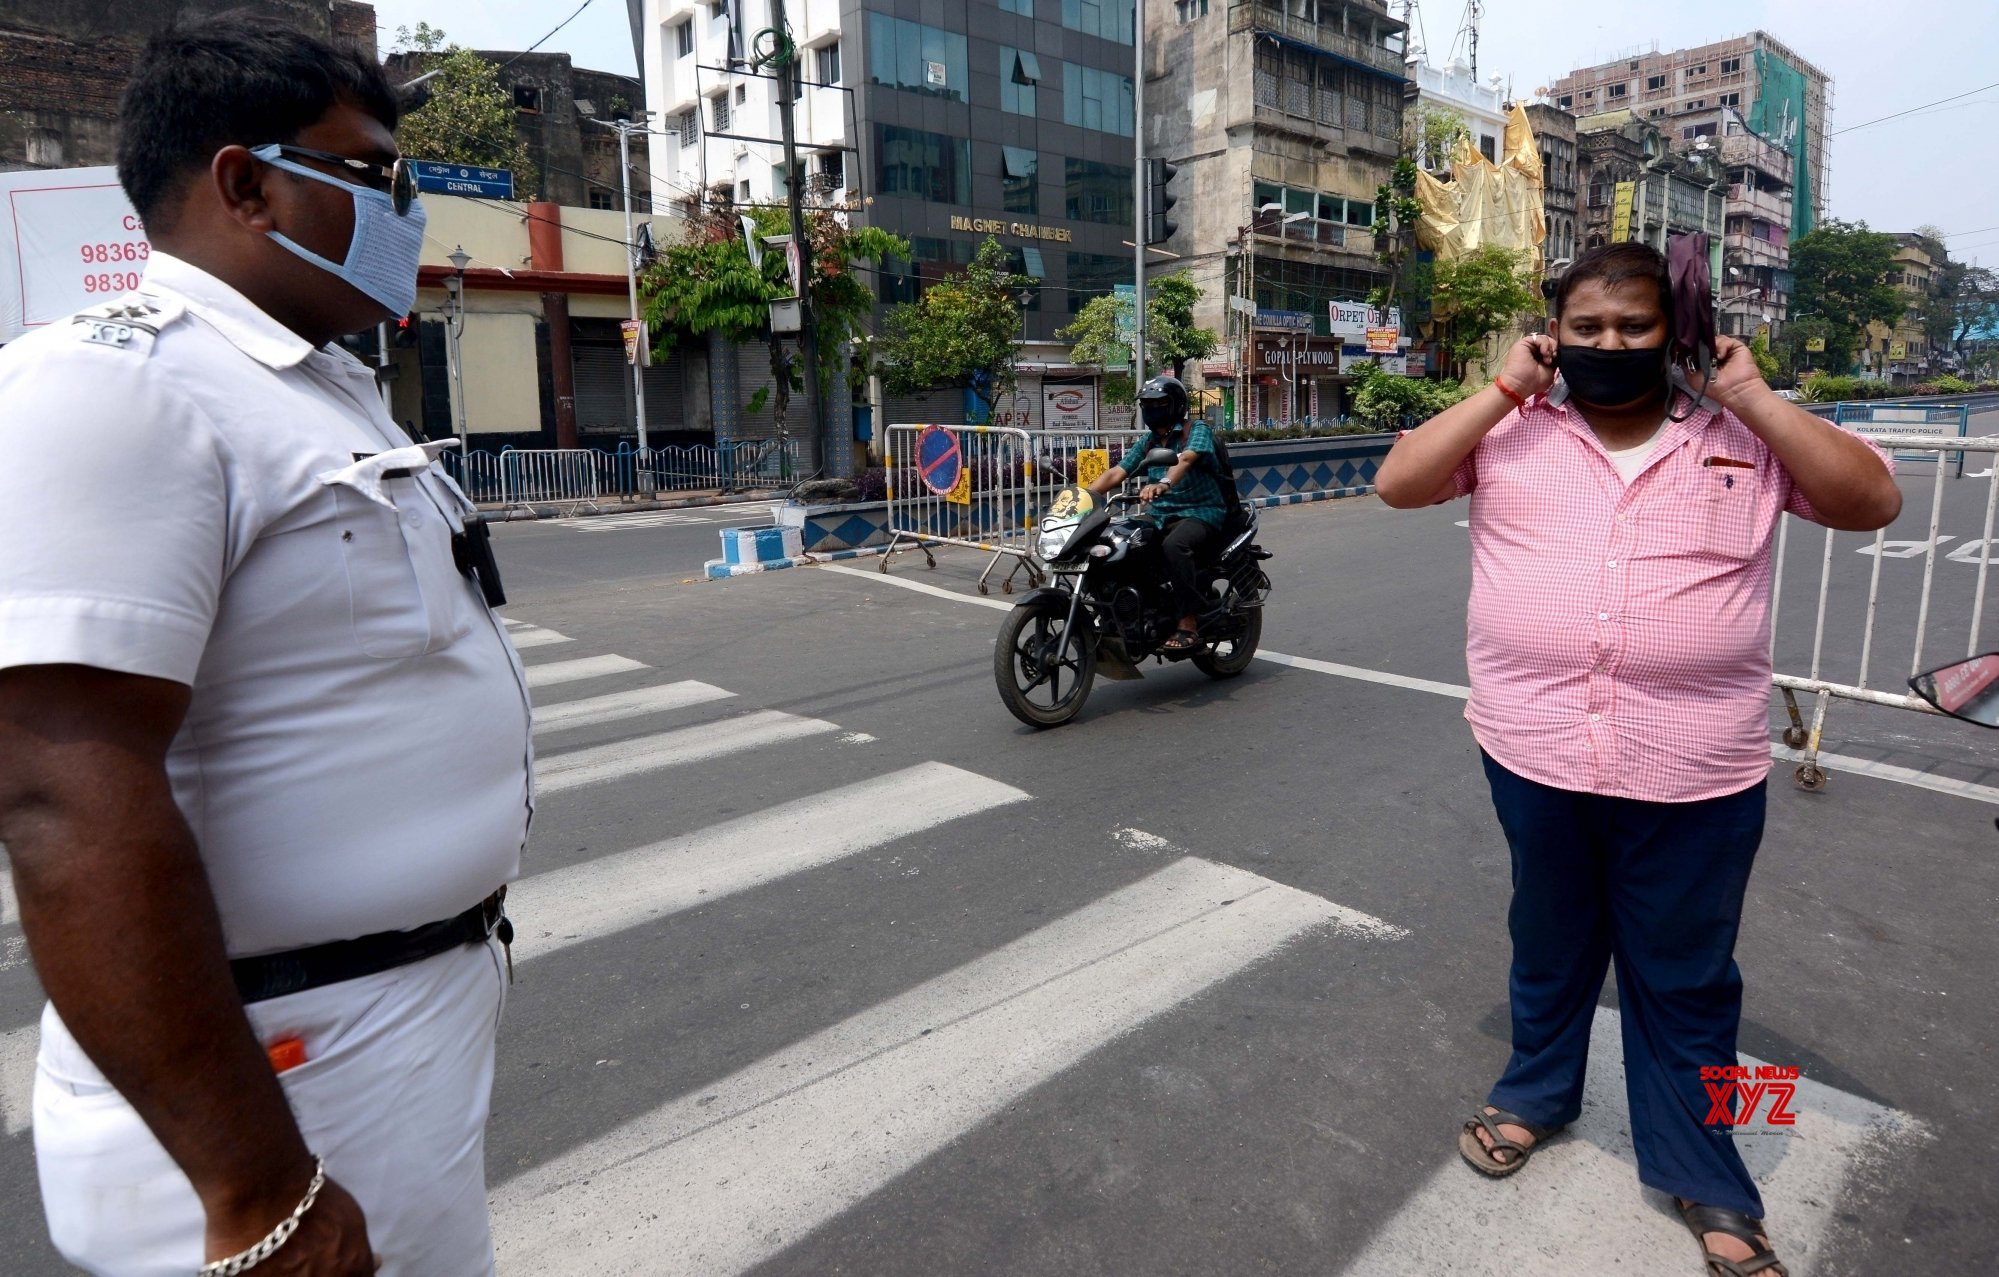 Another COVID-19 case in Bengal, state count reaches 10